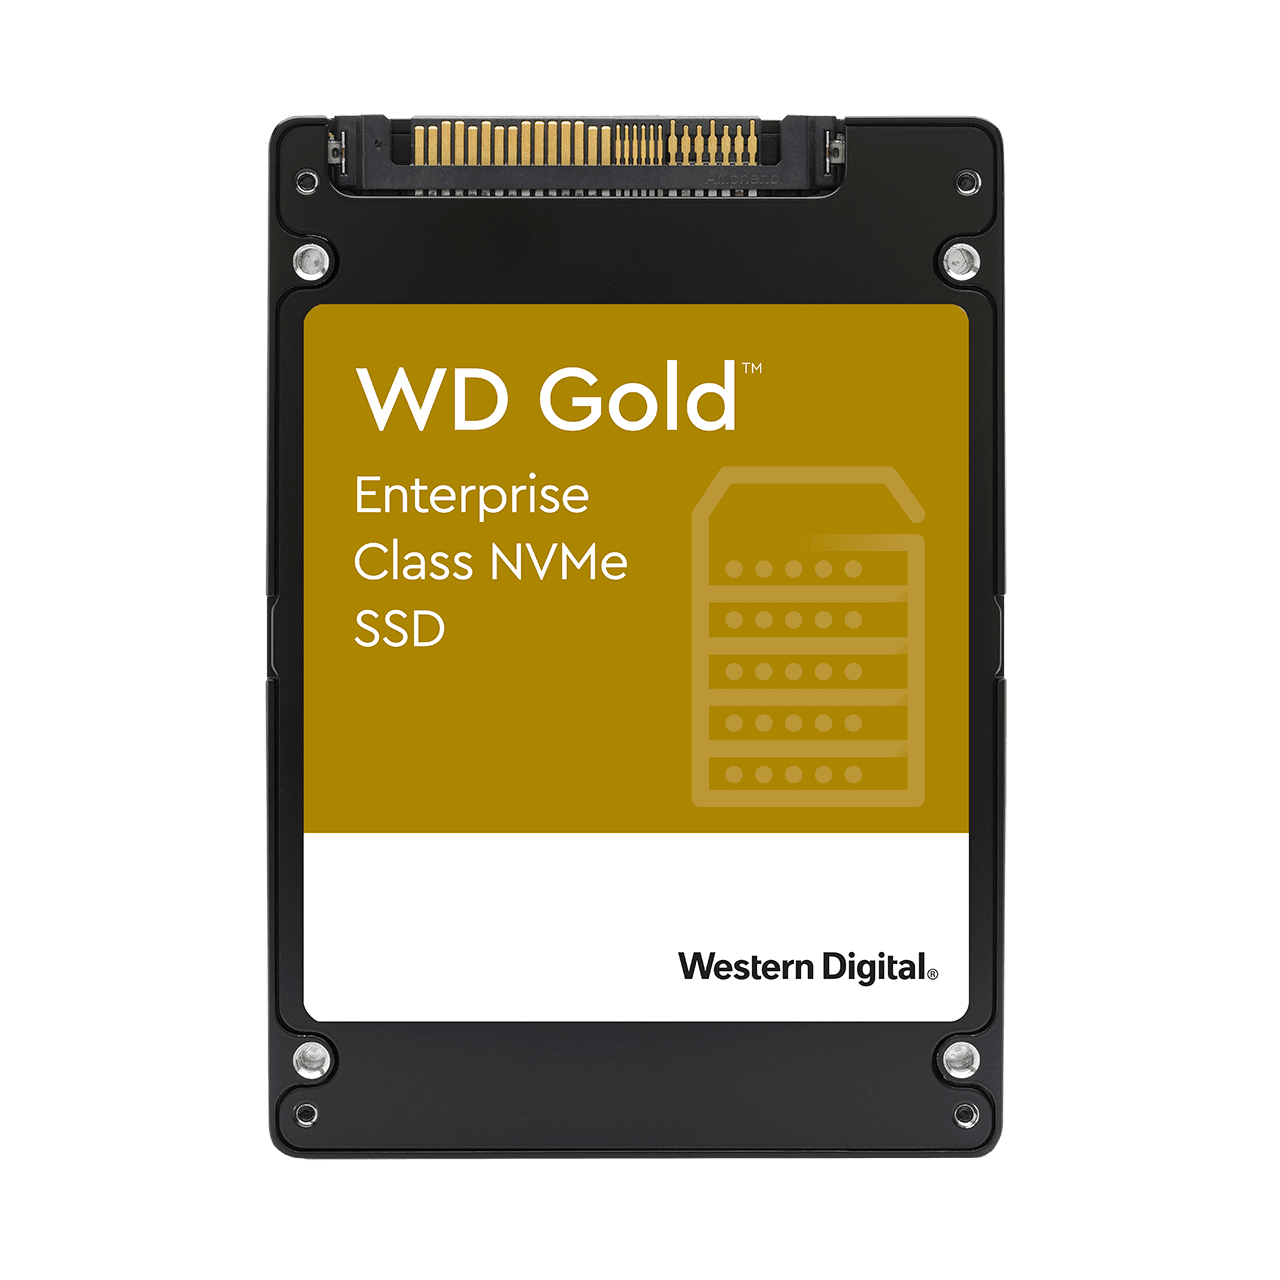 wd-gold-nvme-ssd-front